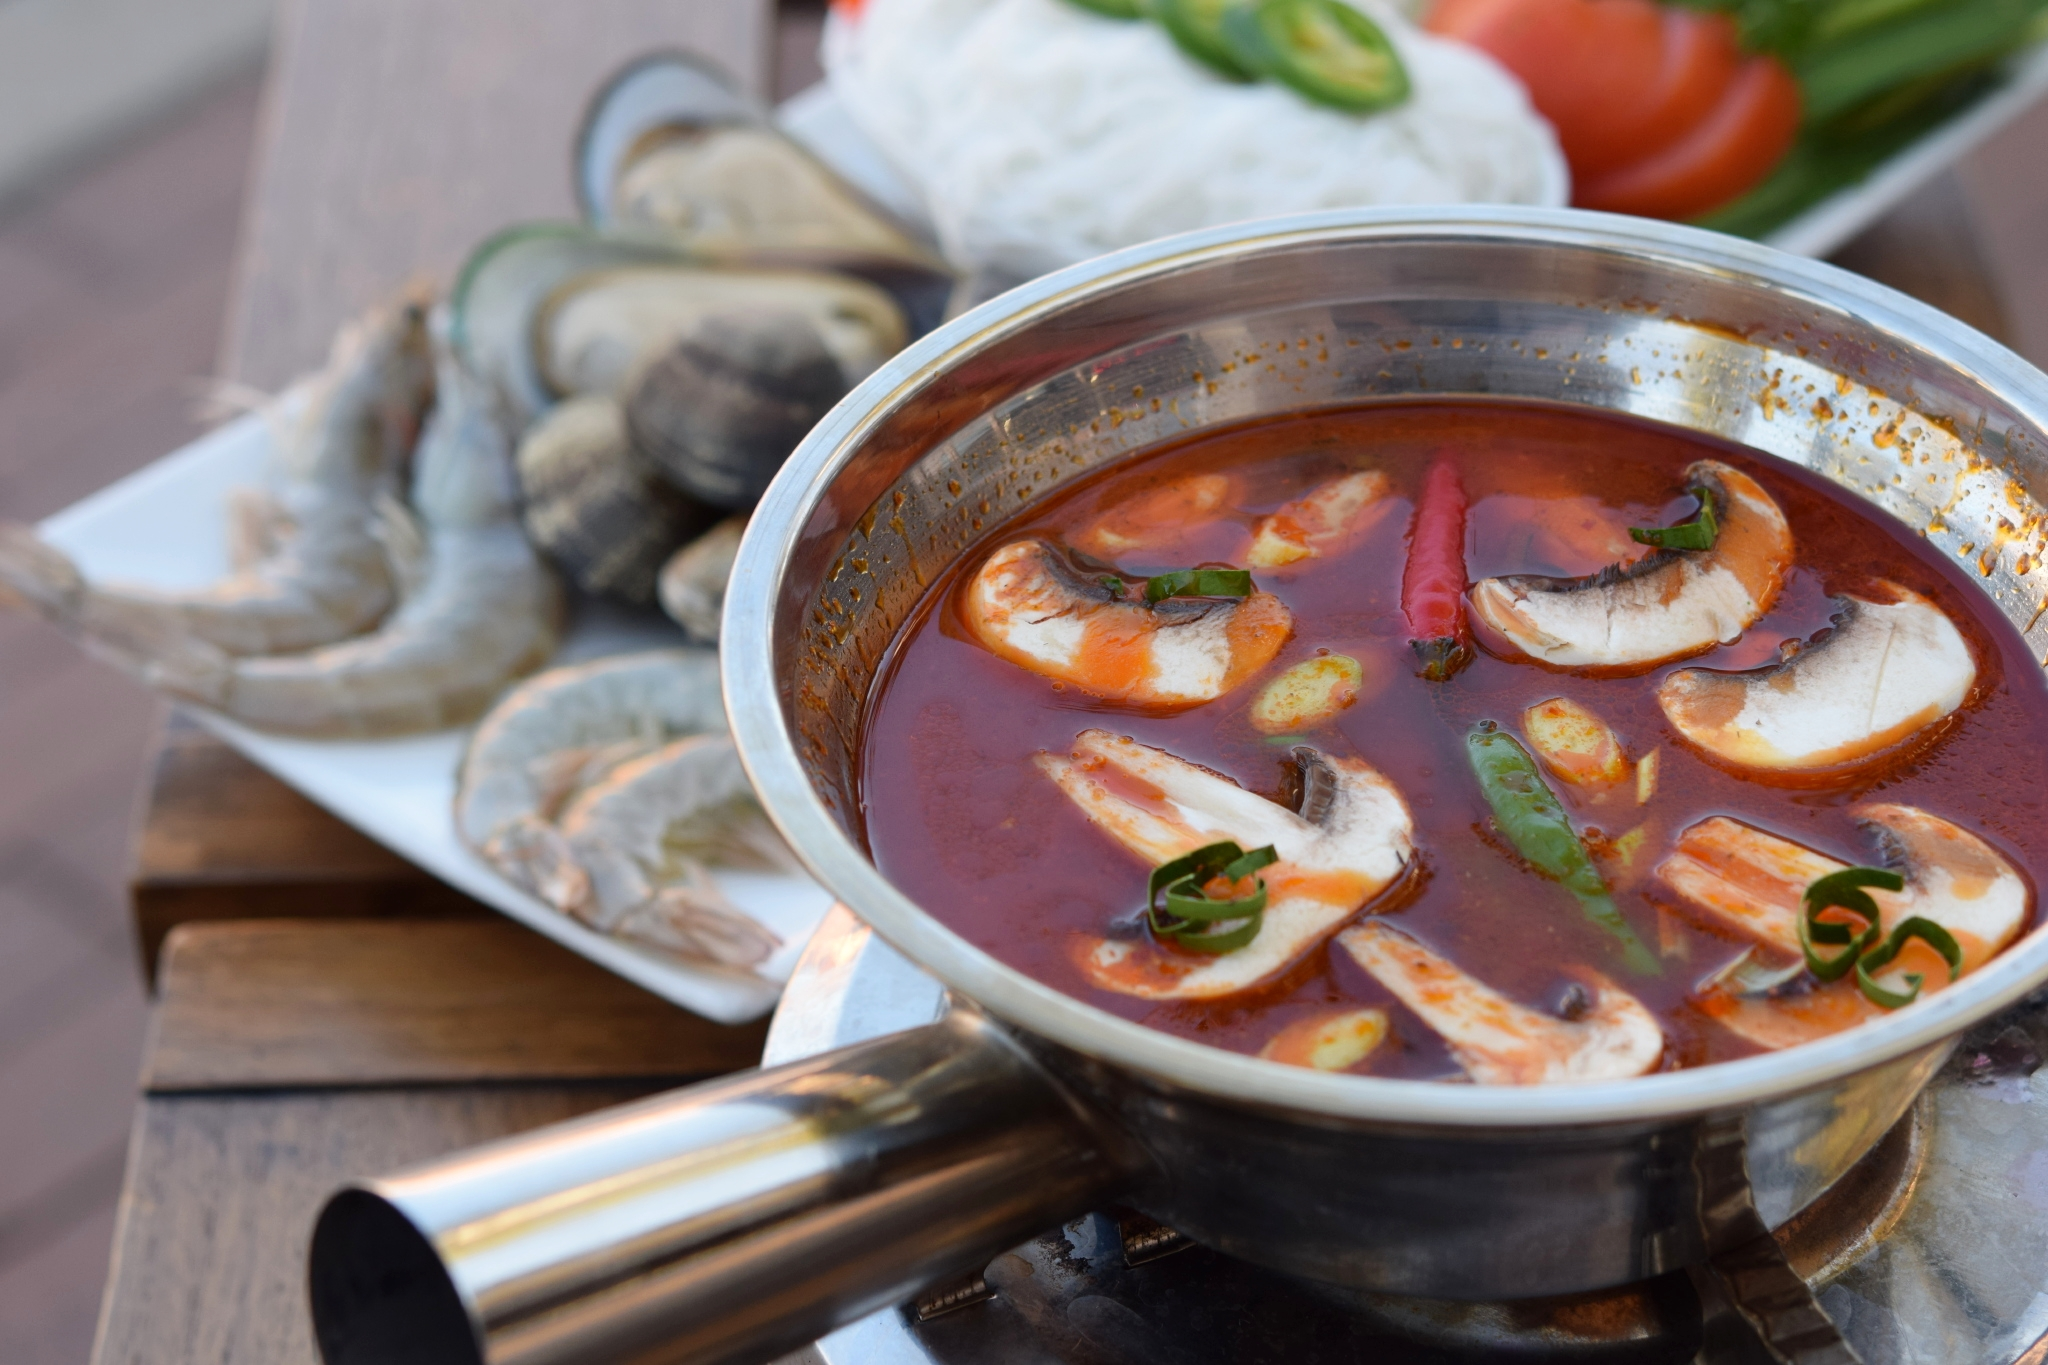 Spicy Seafood Hot Pot from The Wharf   photo courtesy of 100eats